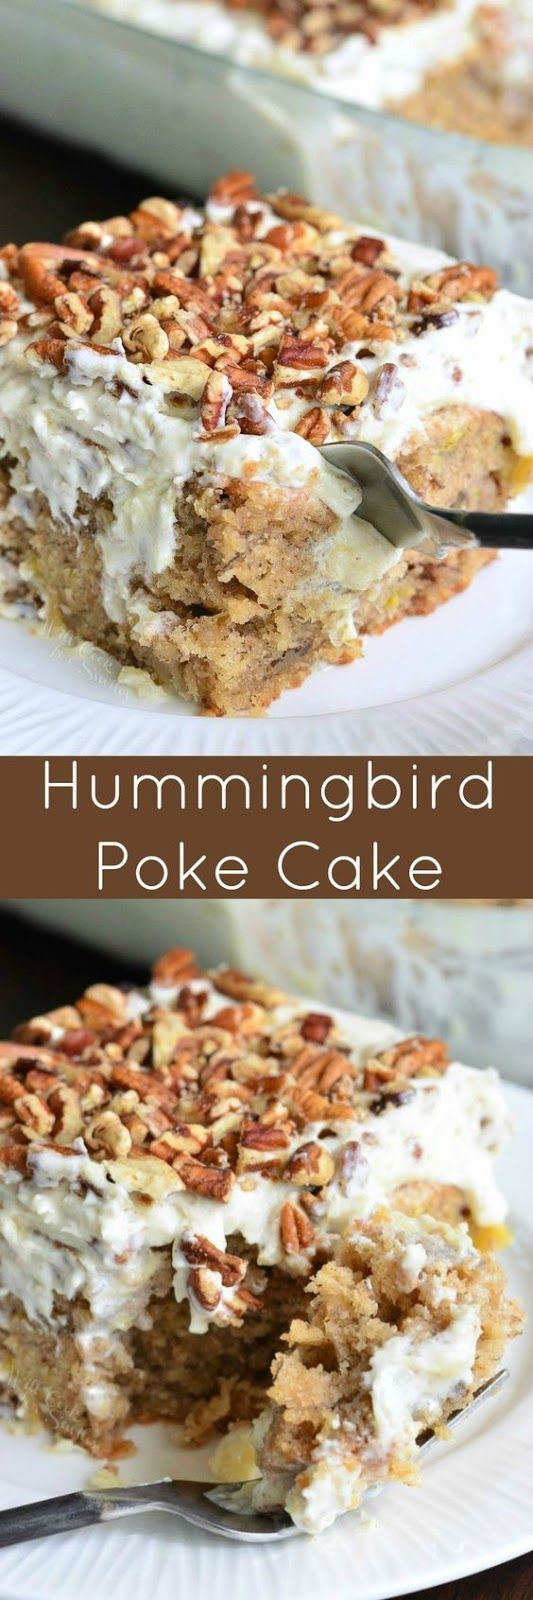 HUMMINGBIRD POKE CAKE | Cake And Food Recipe